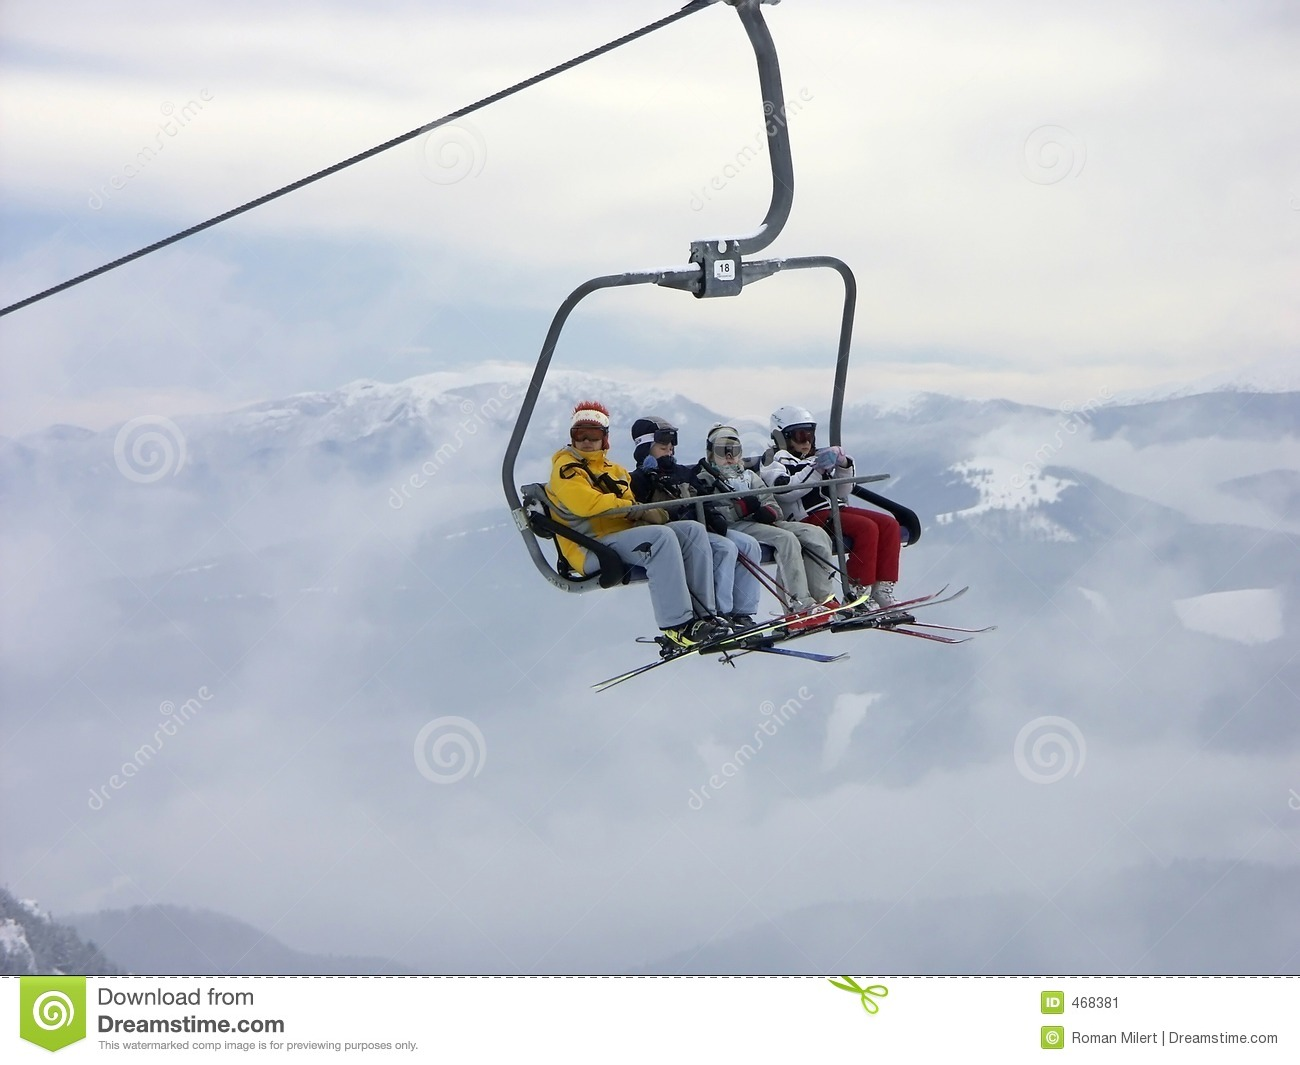 On a chair lift